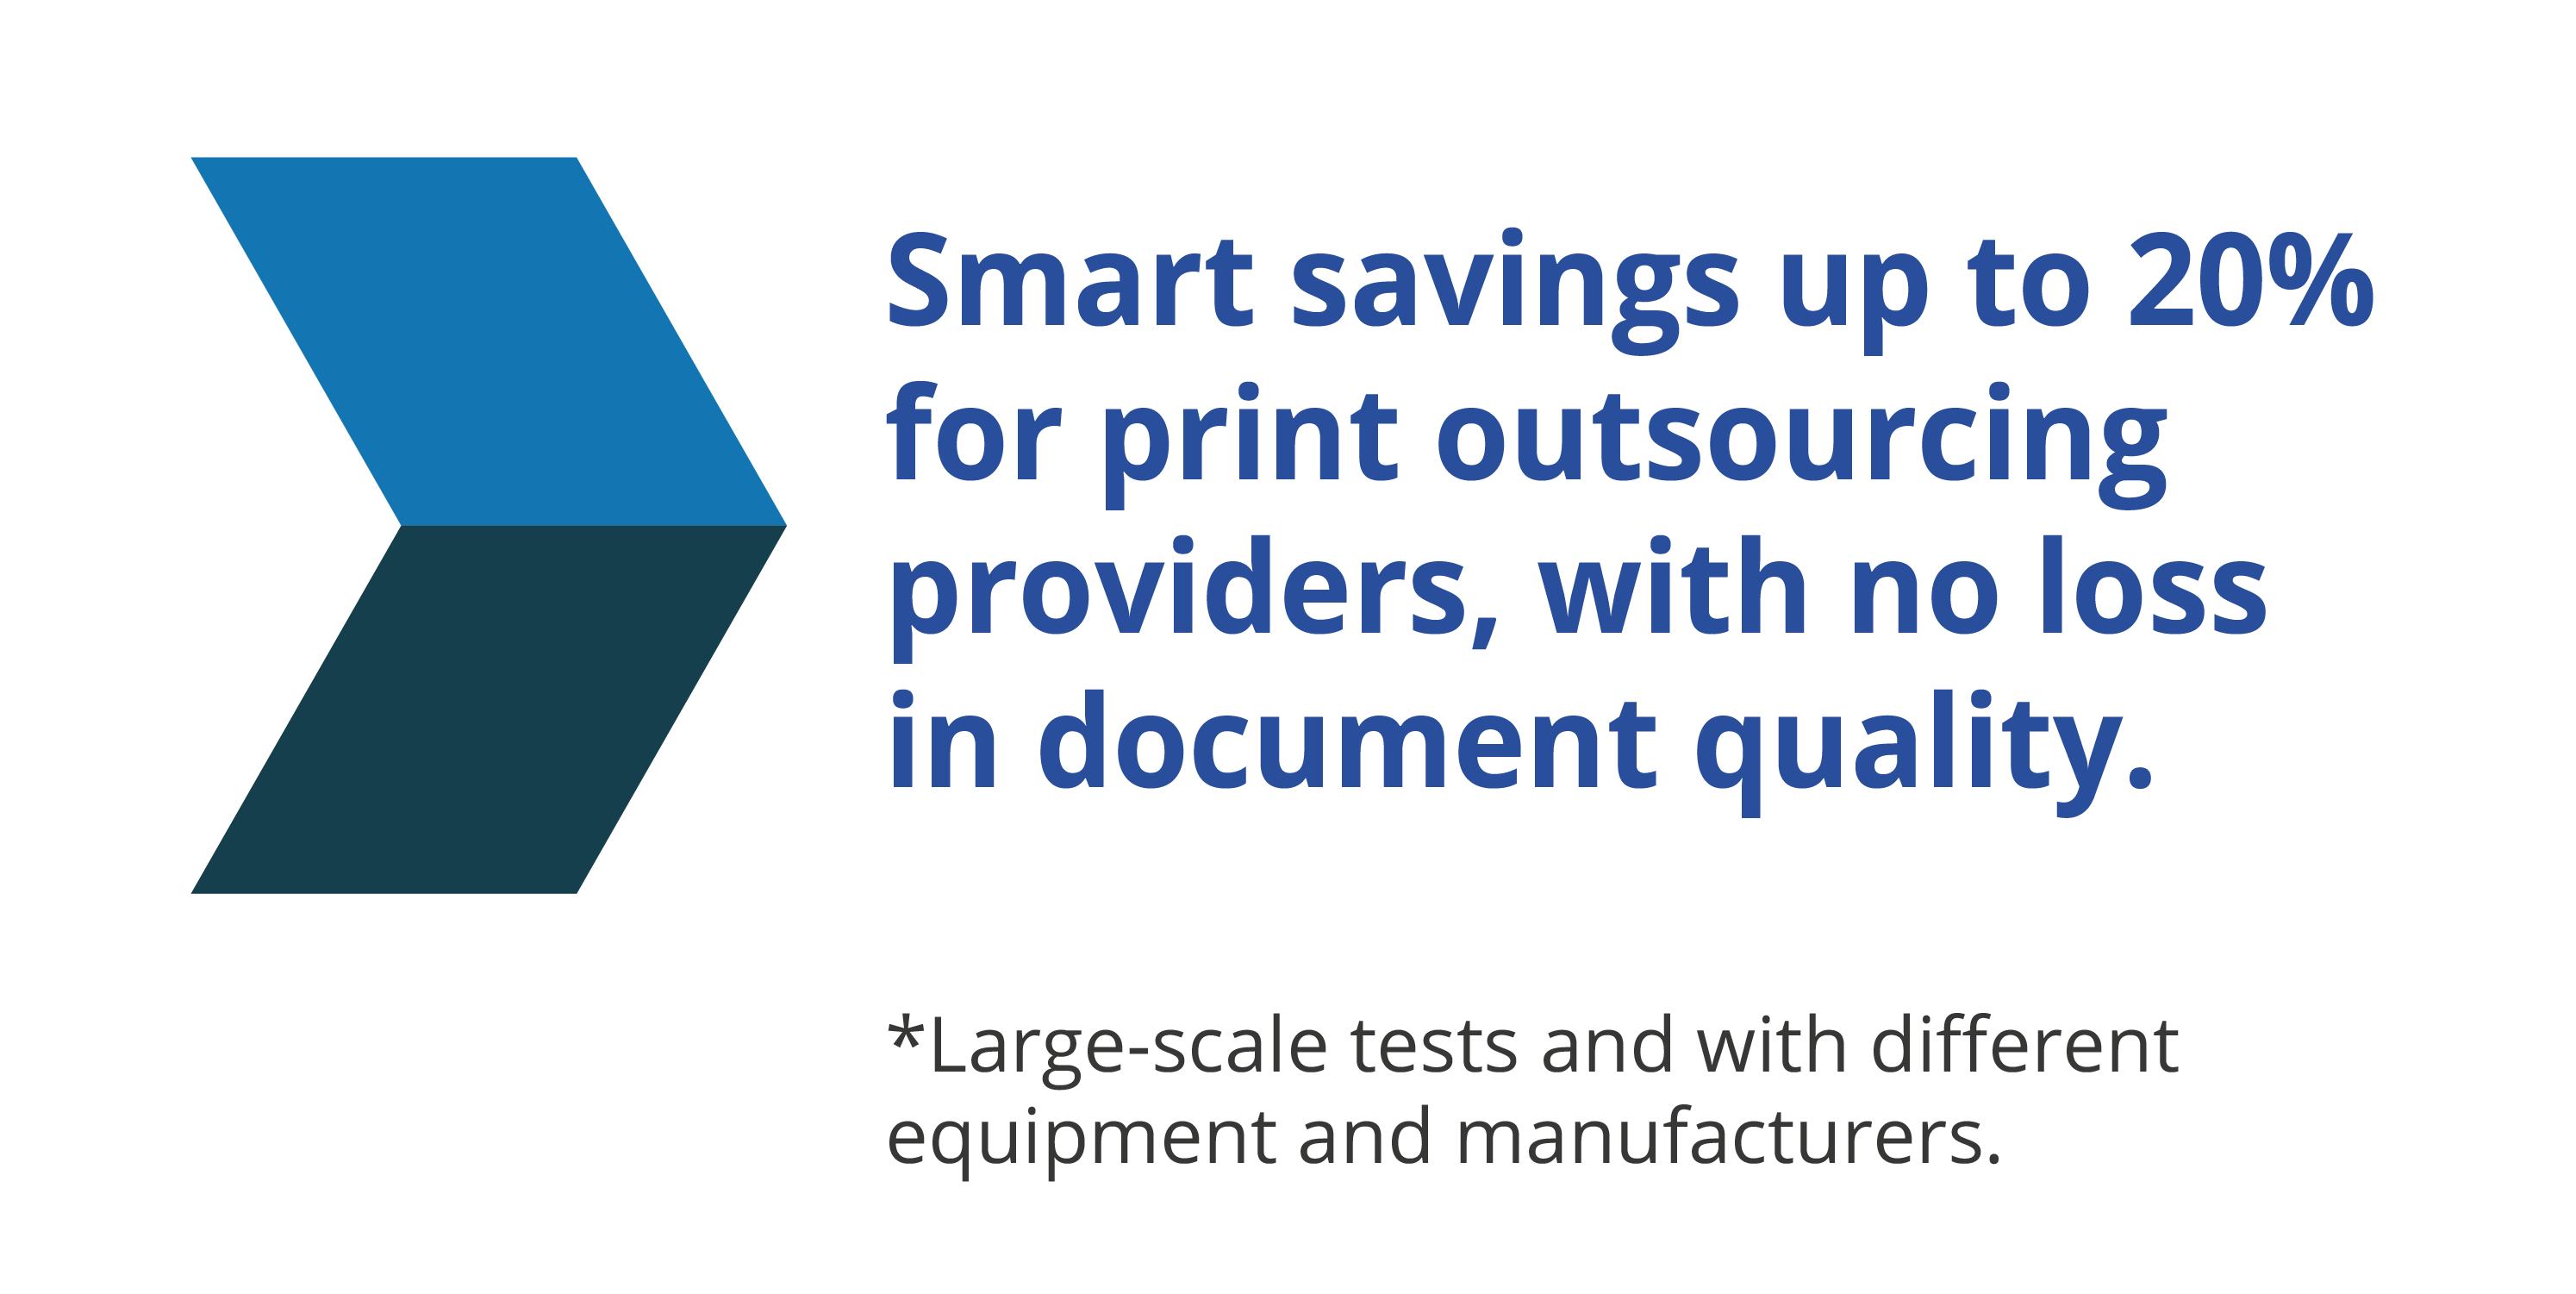 Smart savings up to 20% for print outsourcing providers, with no loss in document quality.